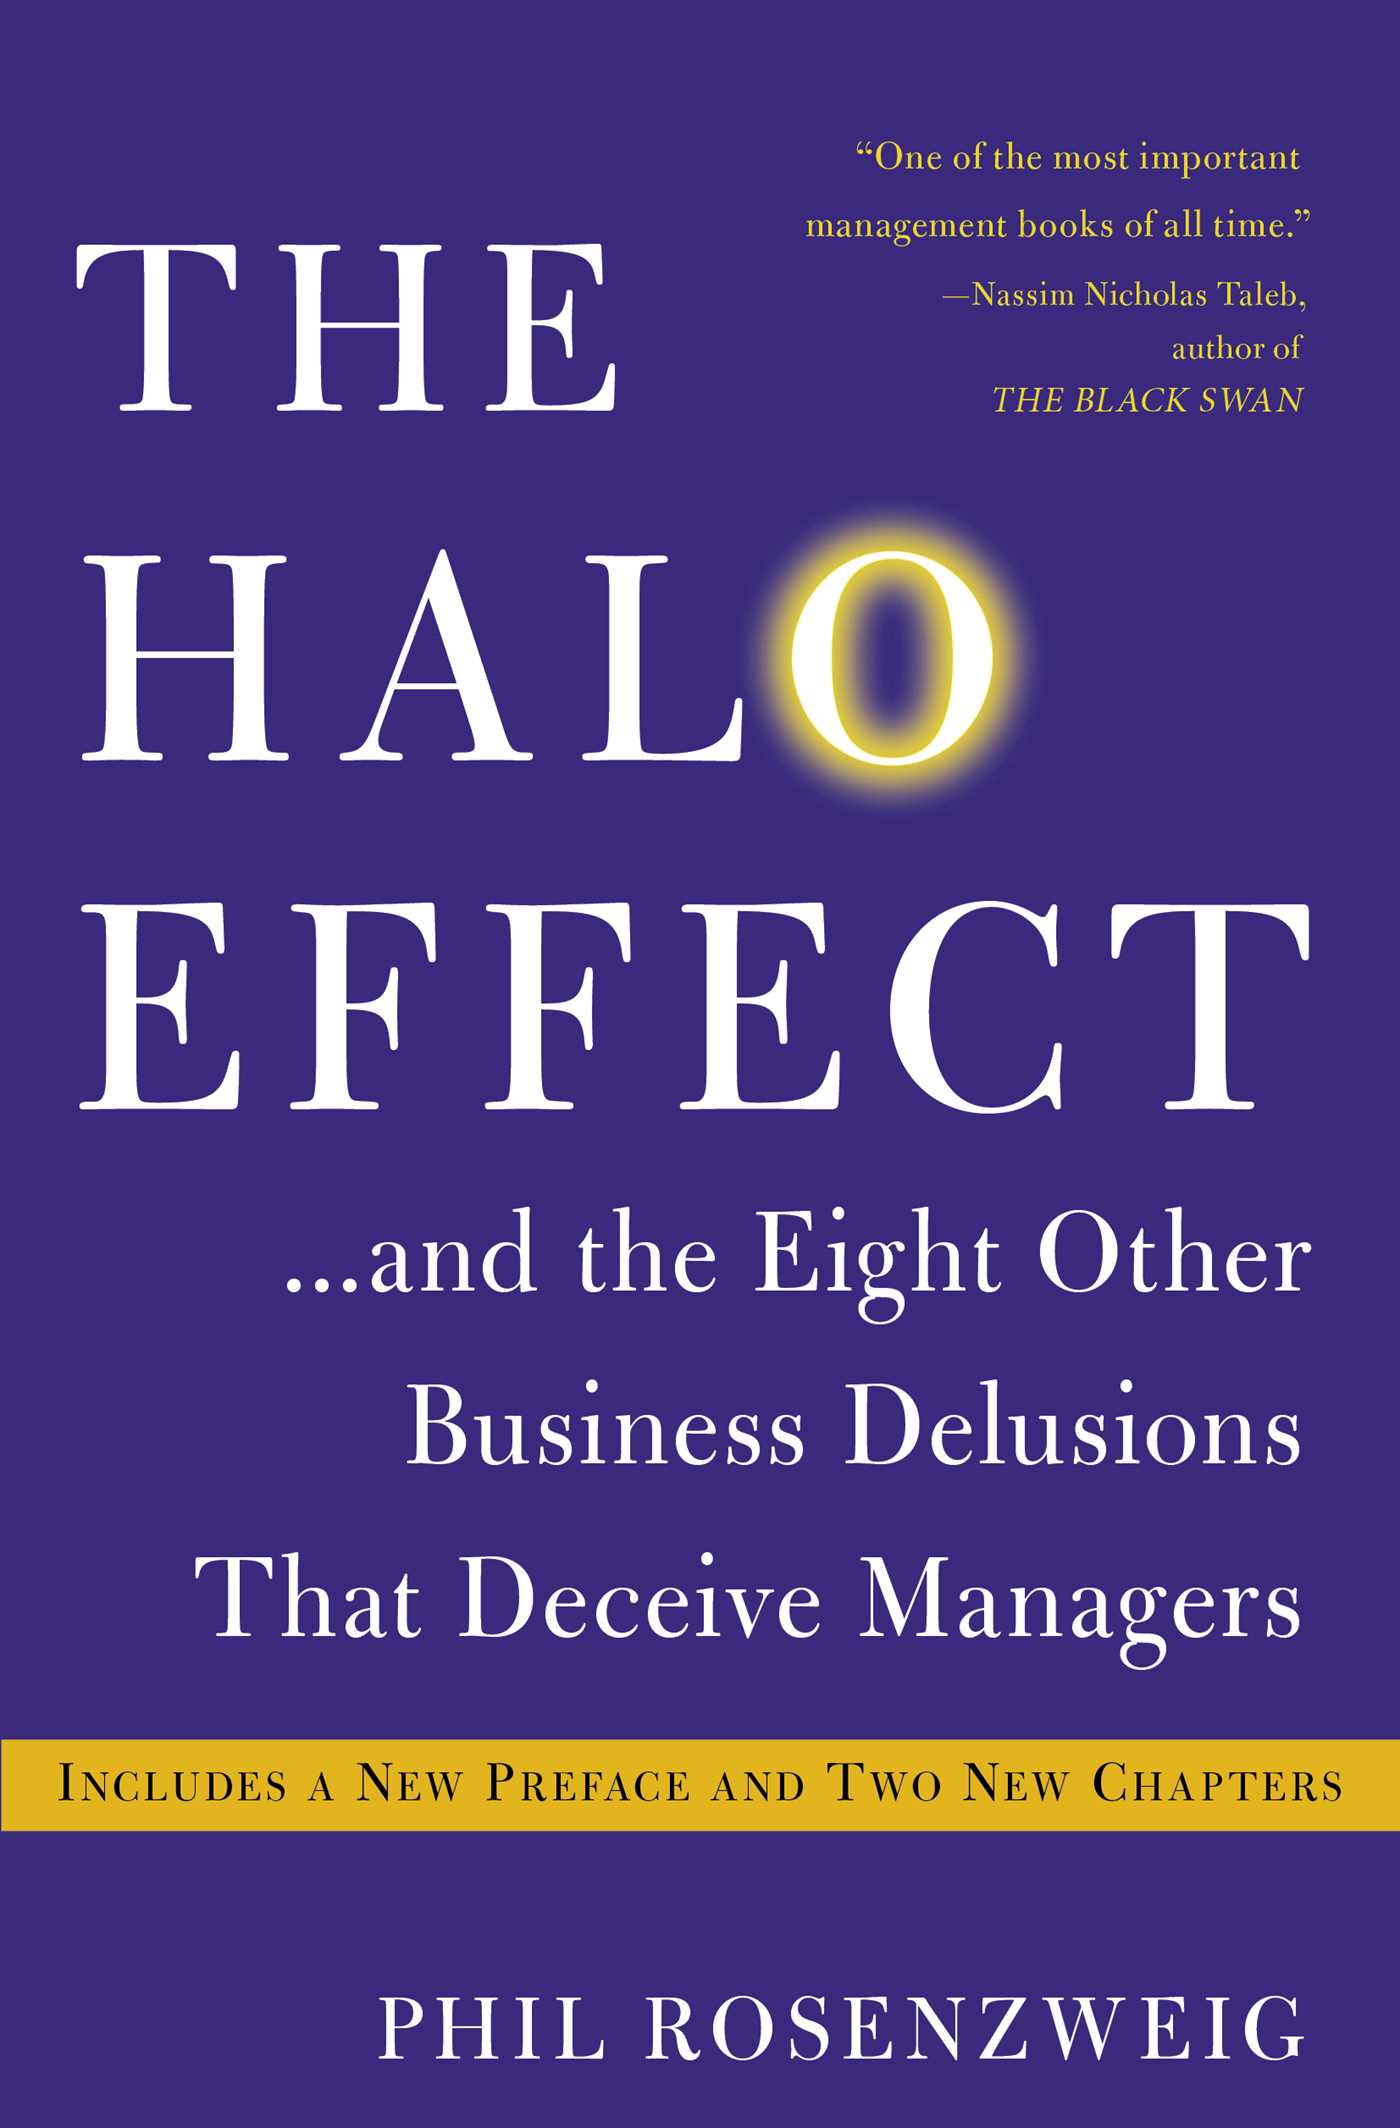 Halo-effect-9781416538585_hr